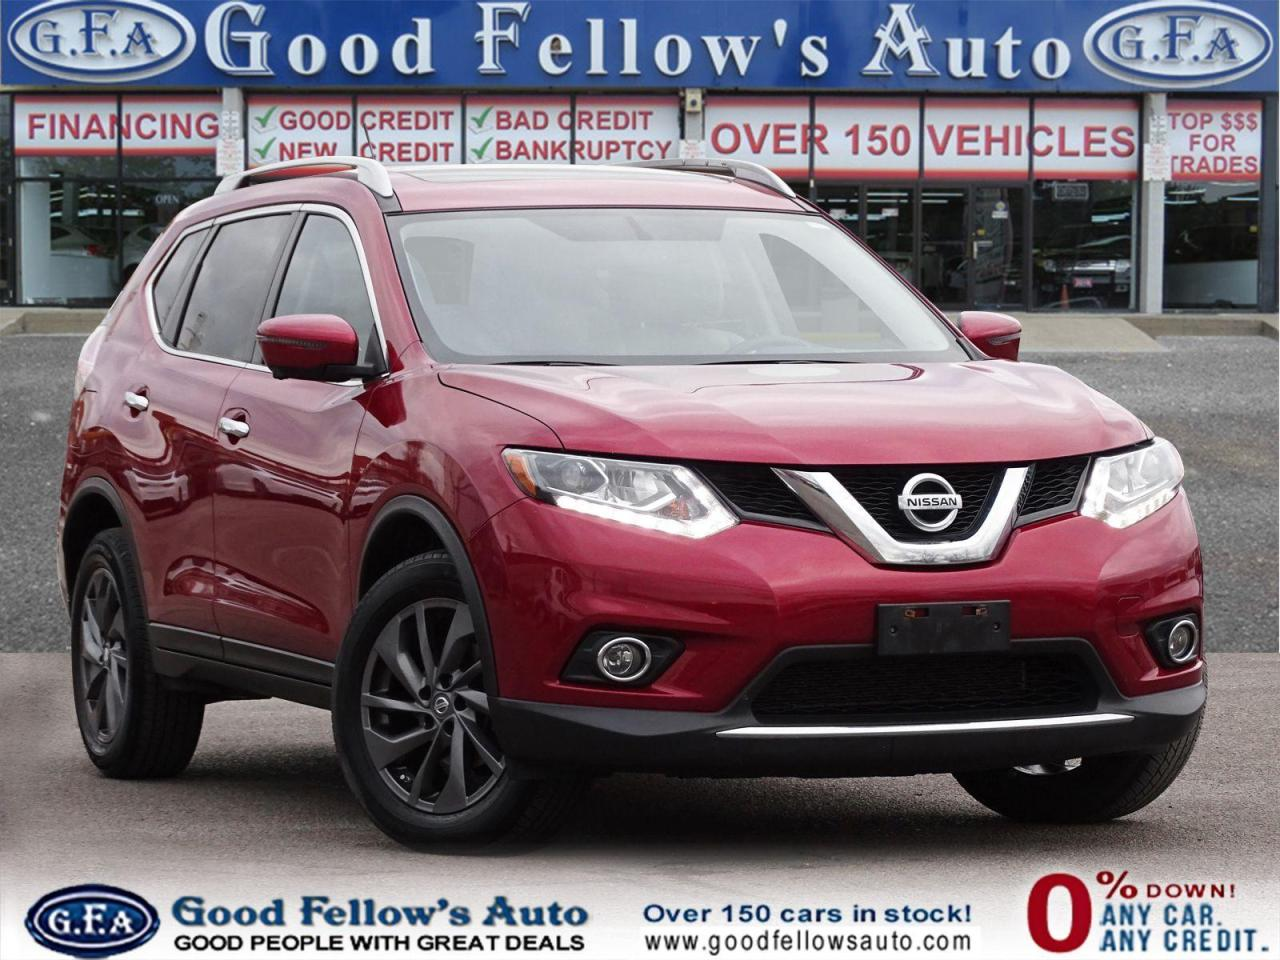 used 2016 Nissan Rogue car, priced at $15,900